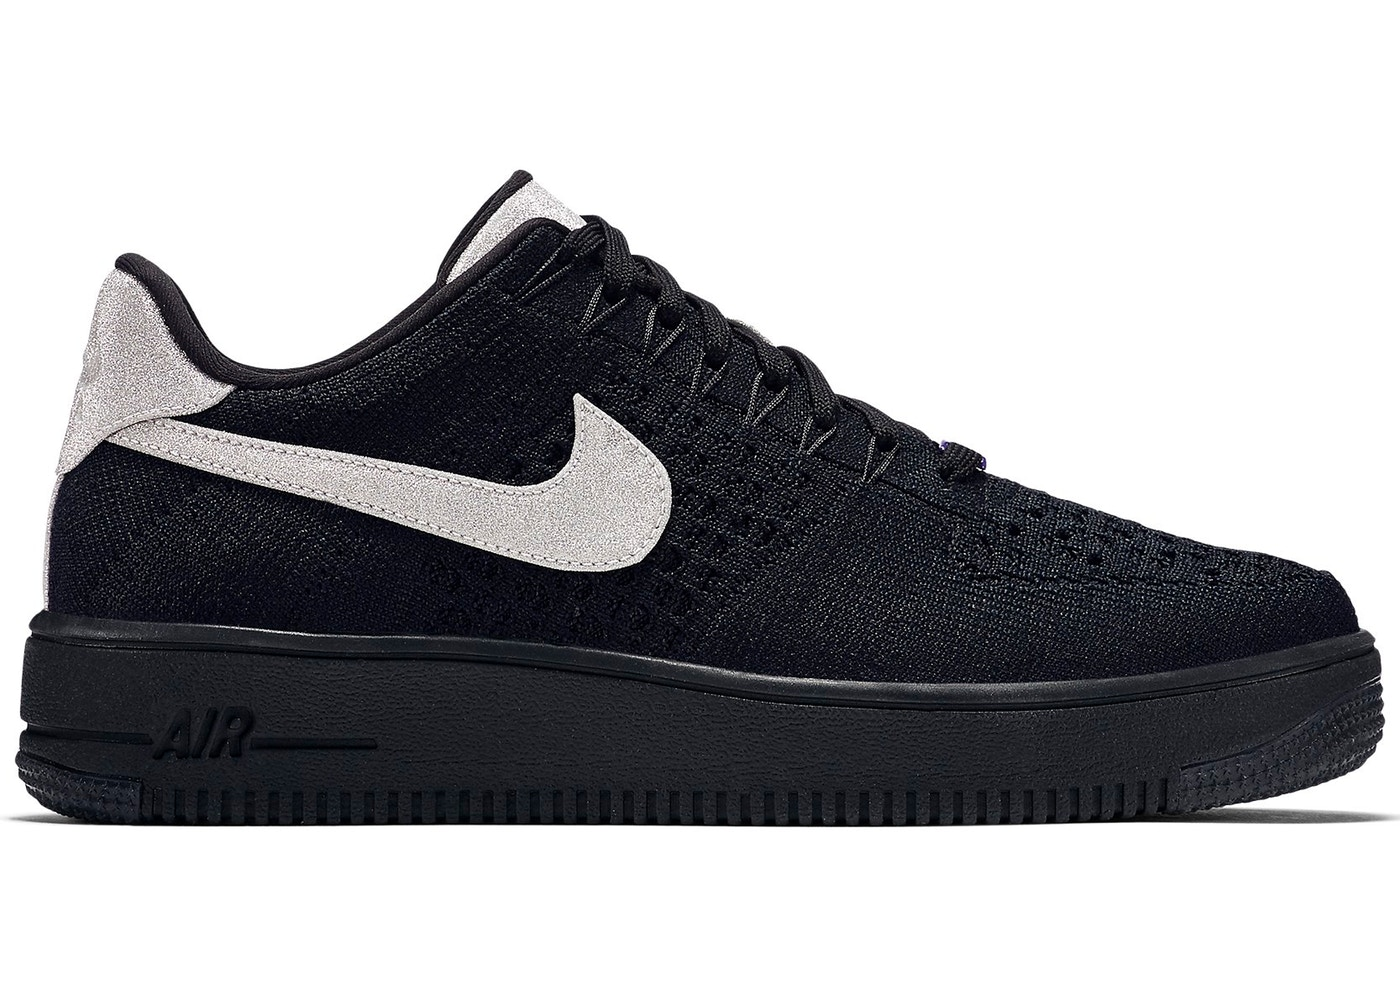 new product 48fa2 af727 Air Force 1 Flyknit Low Black Metallic Silver